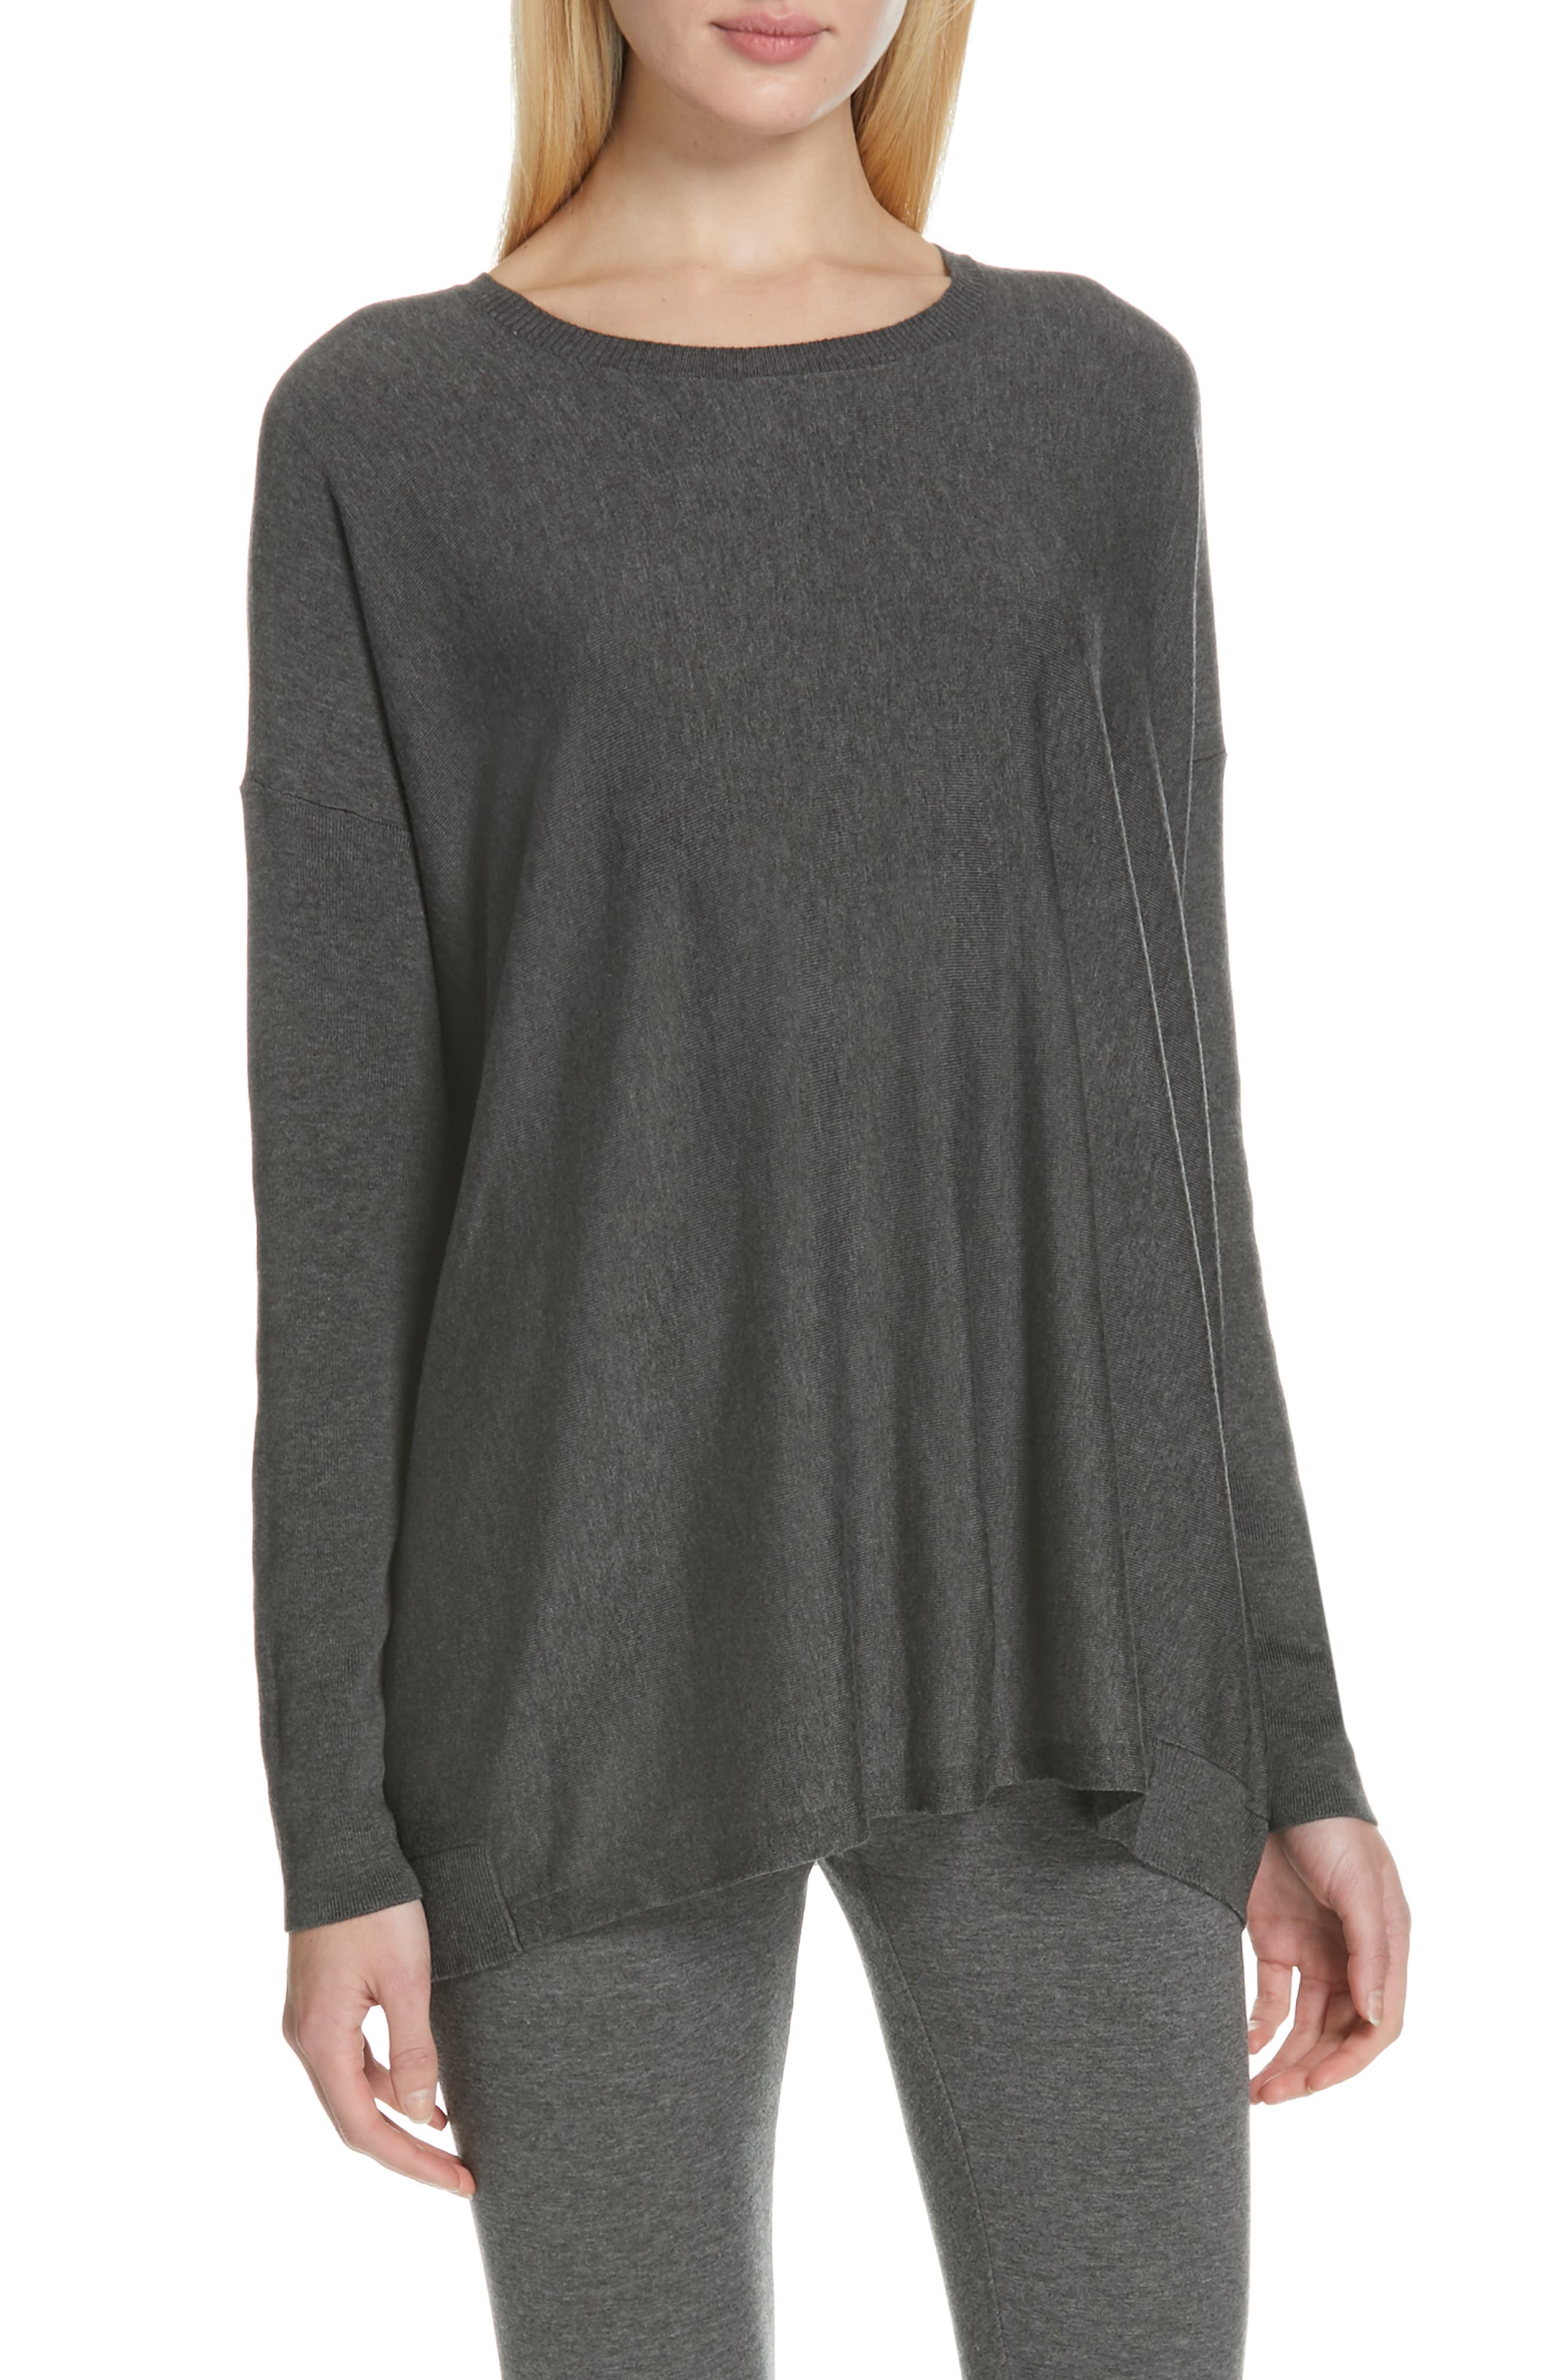 EILEEN FISHER Tencel<sup>®</sup> Lyocell Blend Sweater, Main, color, 030